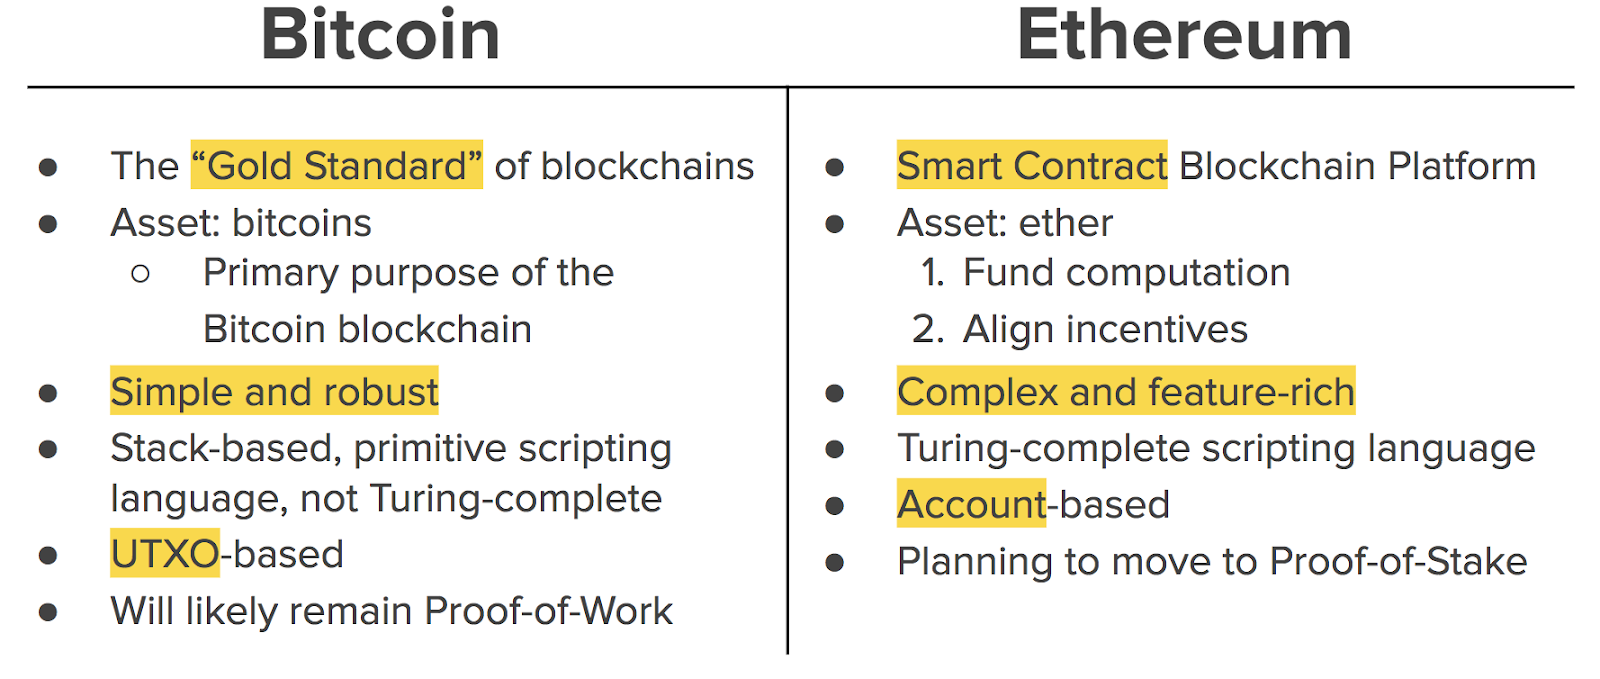 Table reviewing the similarities and differences between Ethereum and Bitcoin